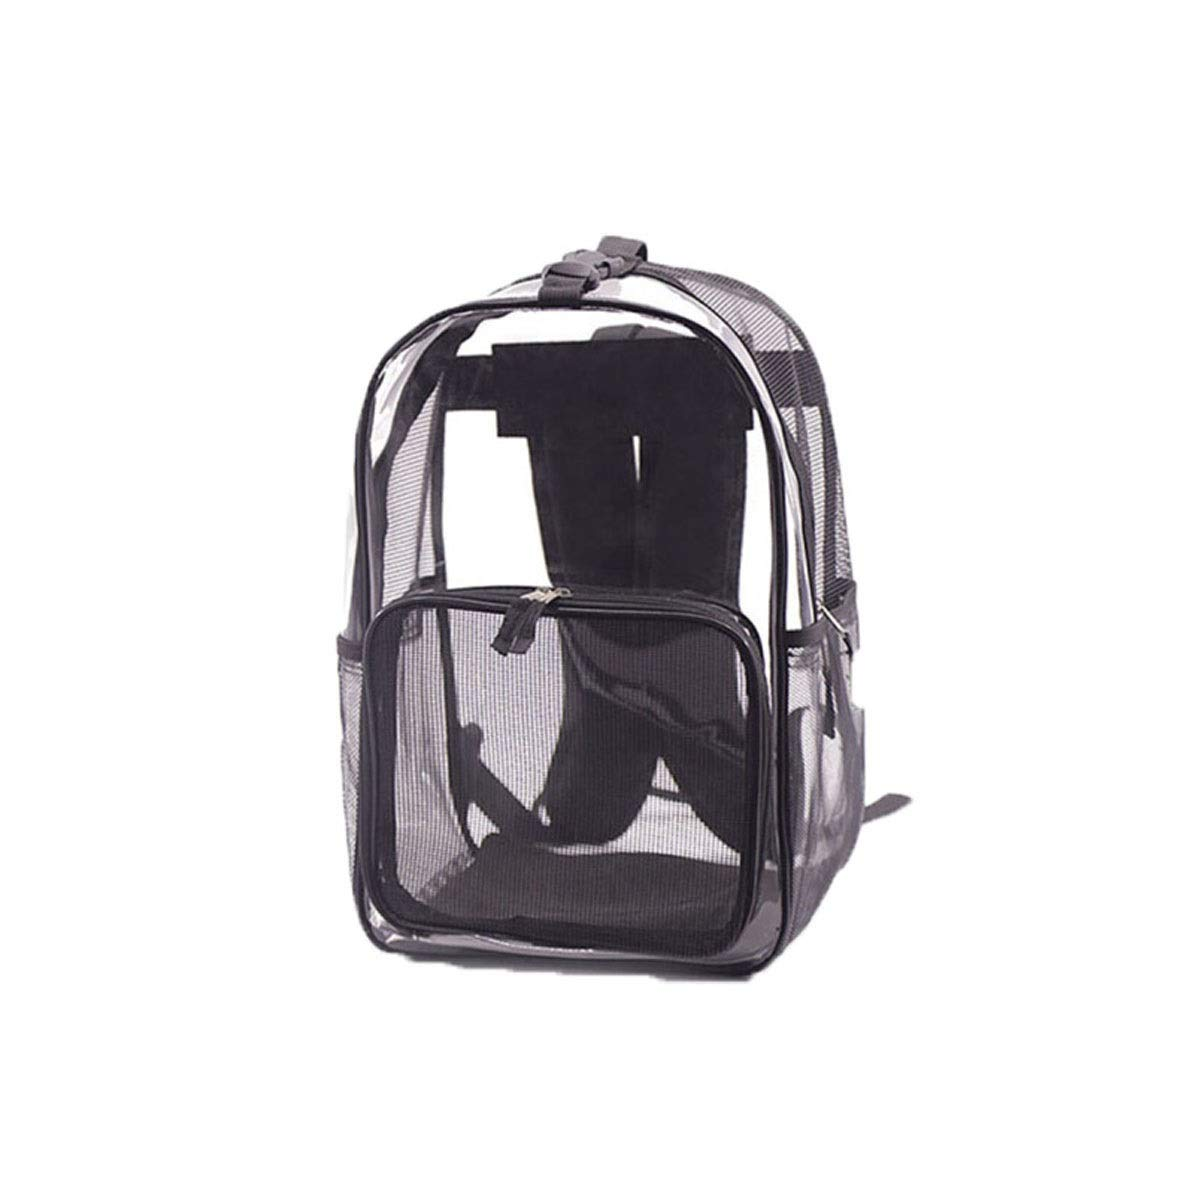 Guyuexuan Pet Backpack, Pet Space Capsule, Cat And Dog Universal Transparent Backpack, Travel Bag, Portable Outing Cat Bag, Cat Cage, Black